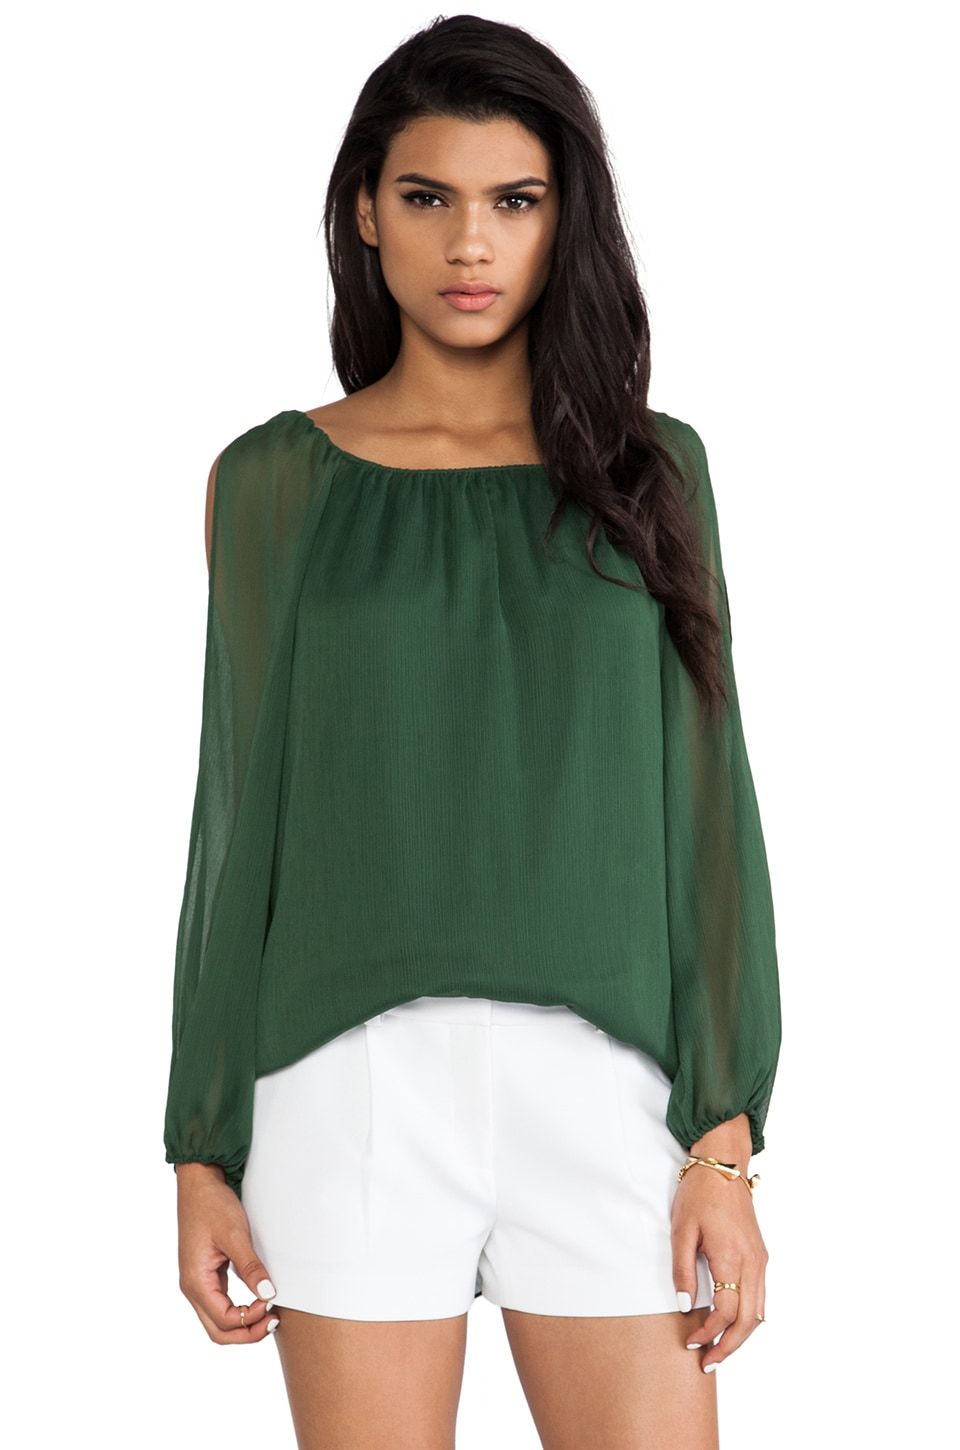 Alice + Olivia Merrie A-Line Cutout Peasant Top in Pine